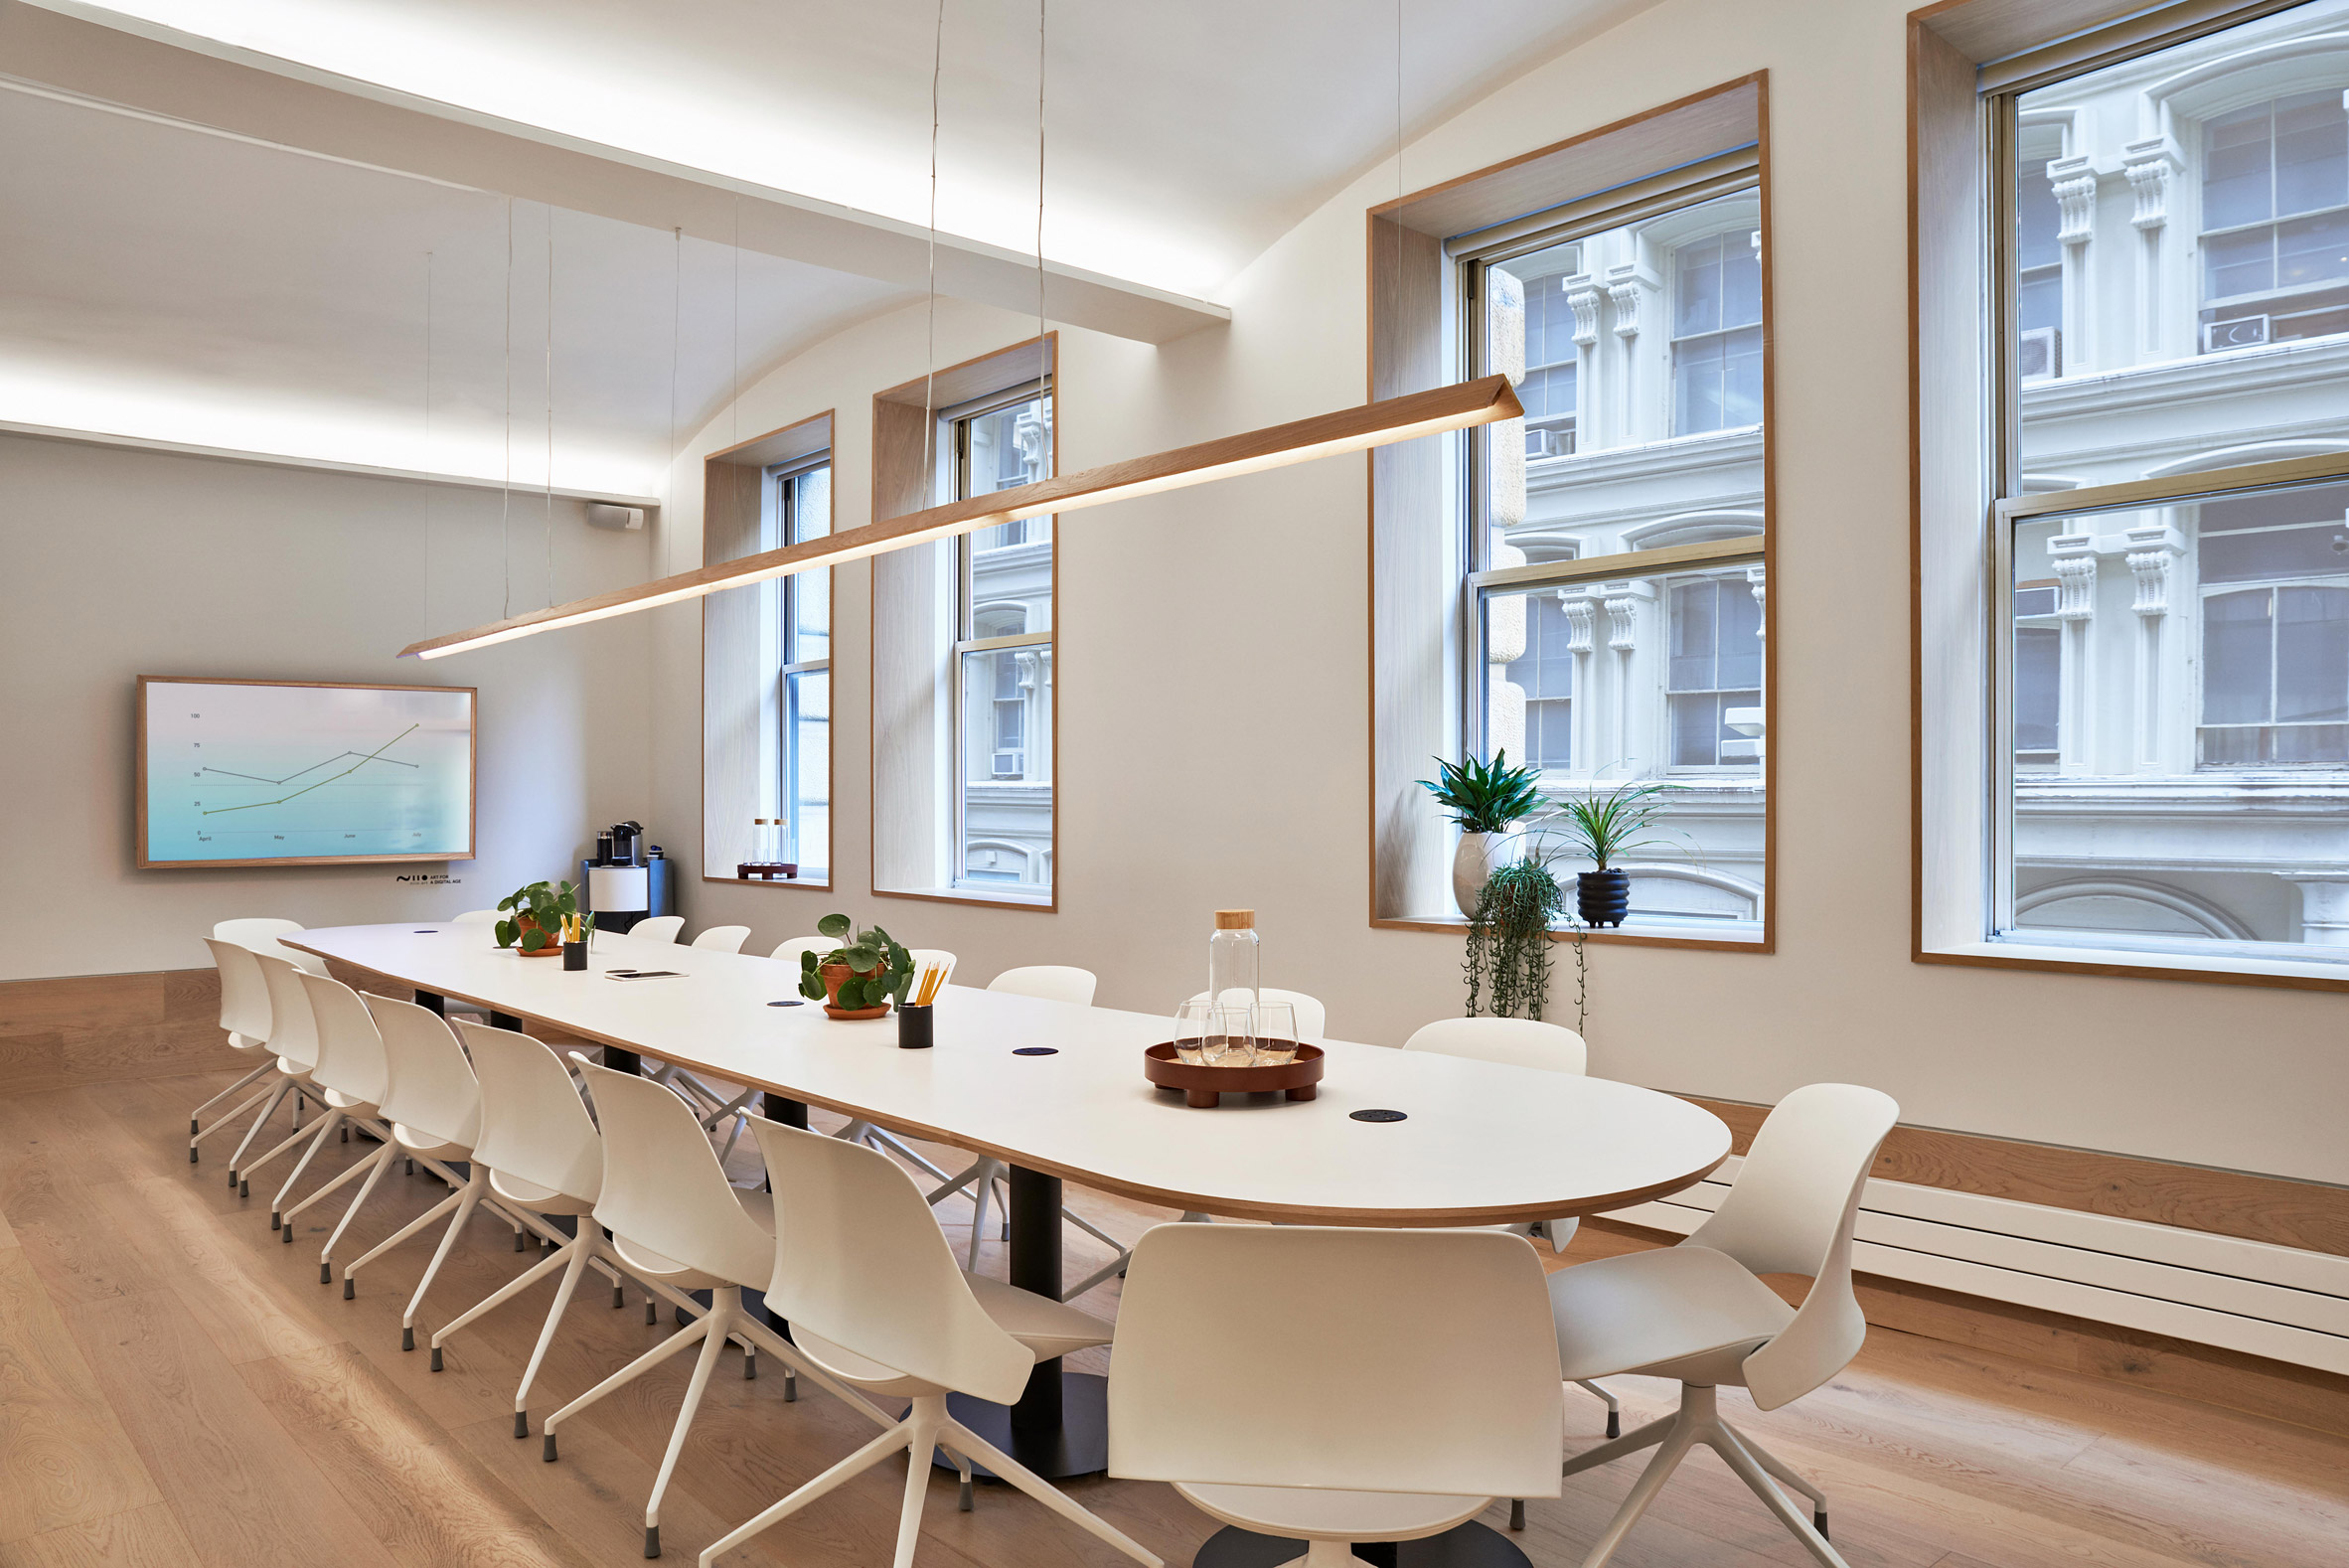 meet-in-place-float-studio-interiors-offices-financial-district-new-york-city-usa_dezeen_2364_col_2-2.jpg